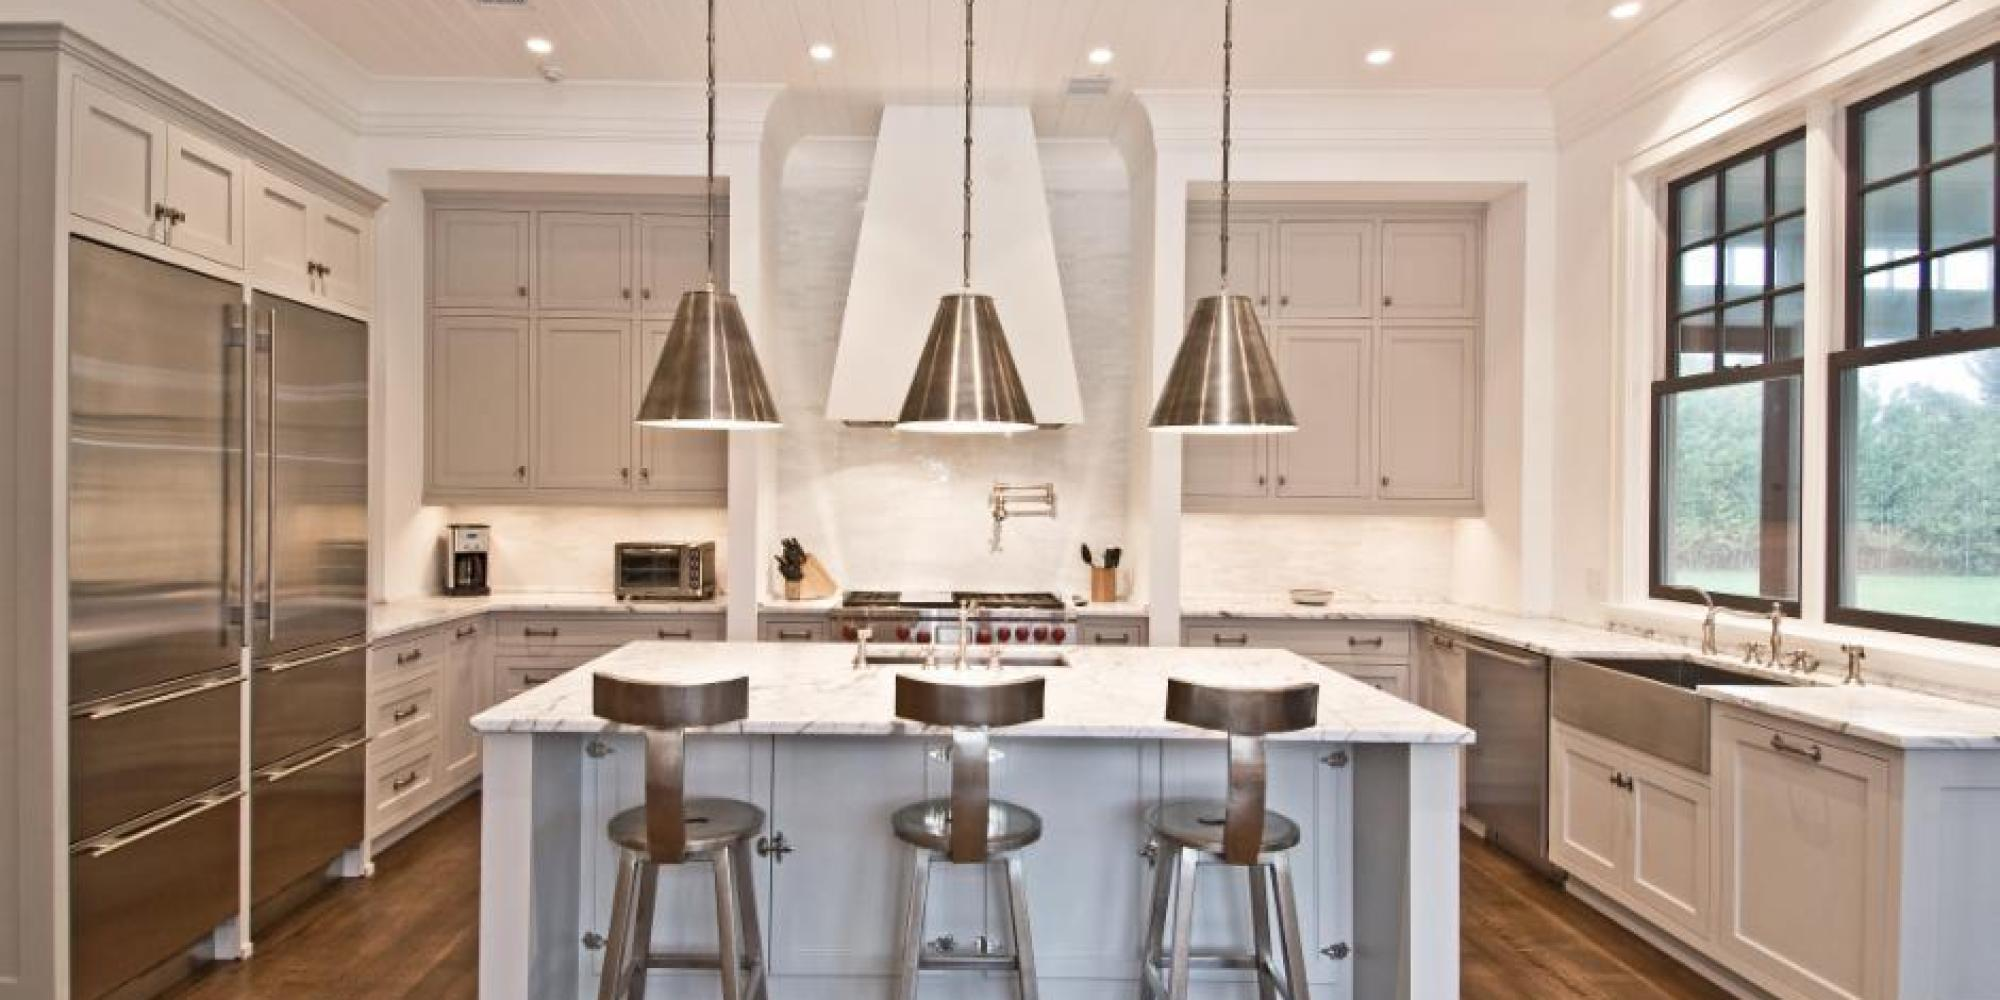 The Best Paint Colors For Every Type Of Kitchen HuffPost - Colors for kitchen cabinets and walls